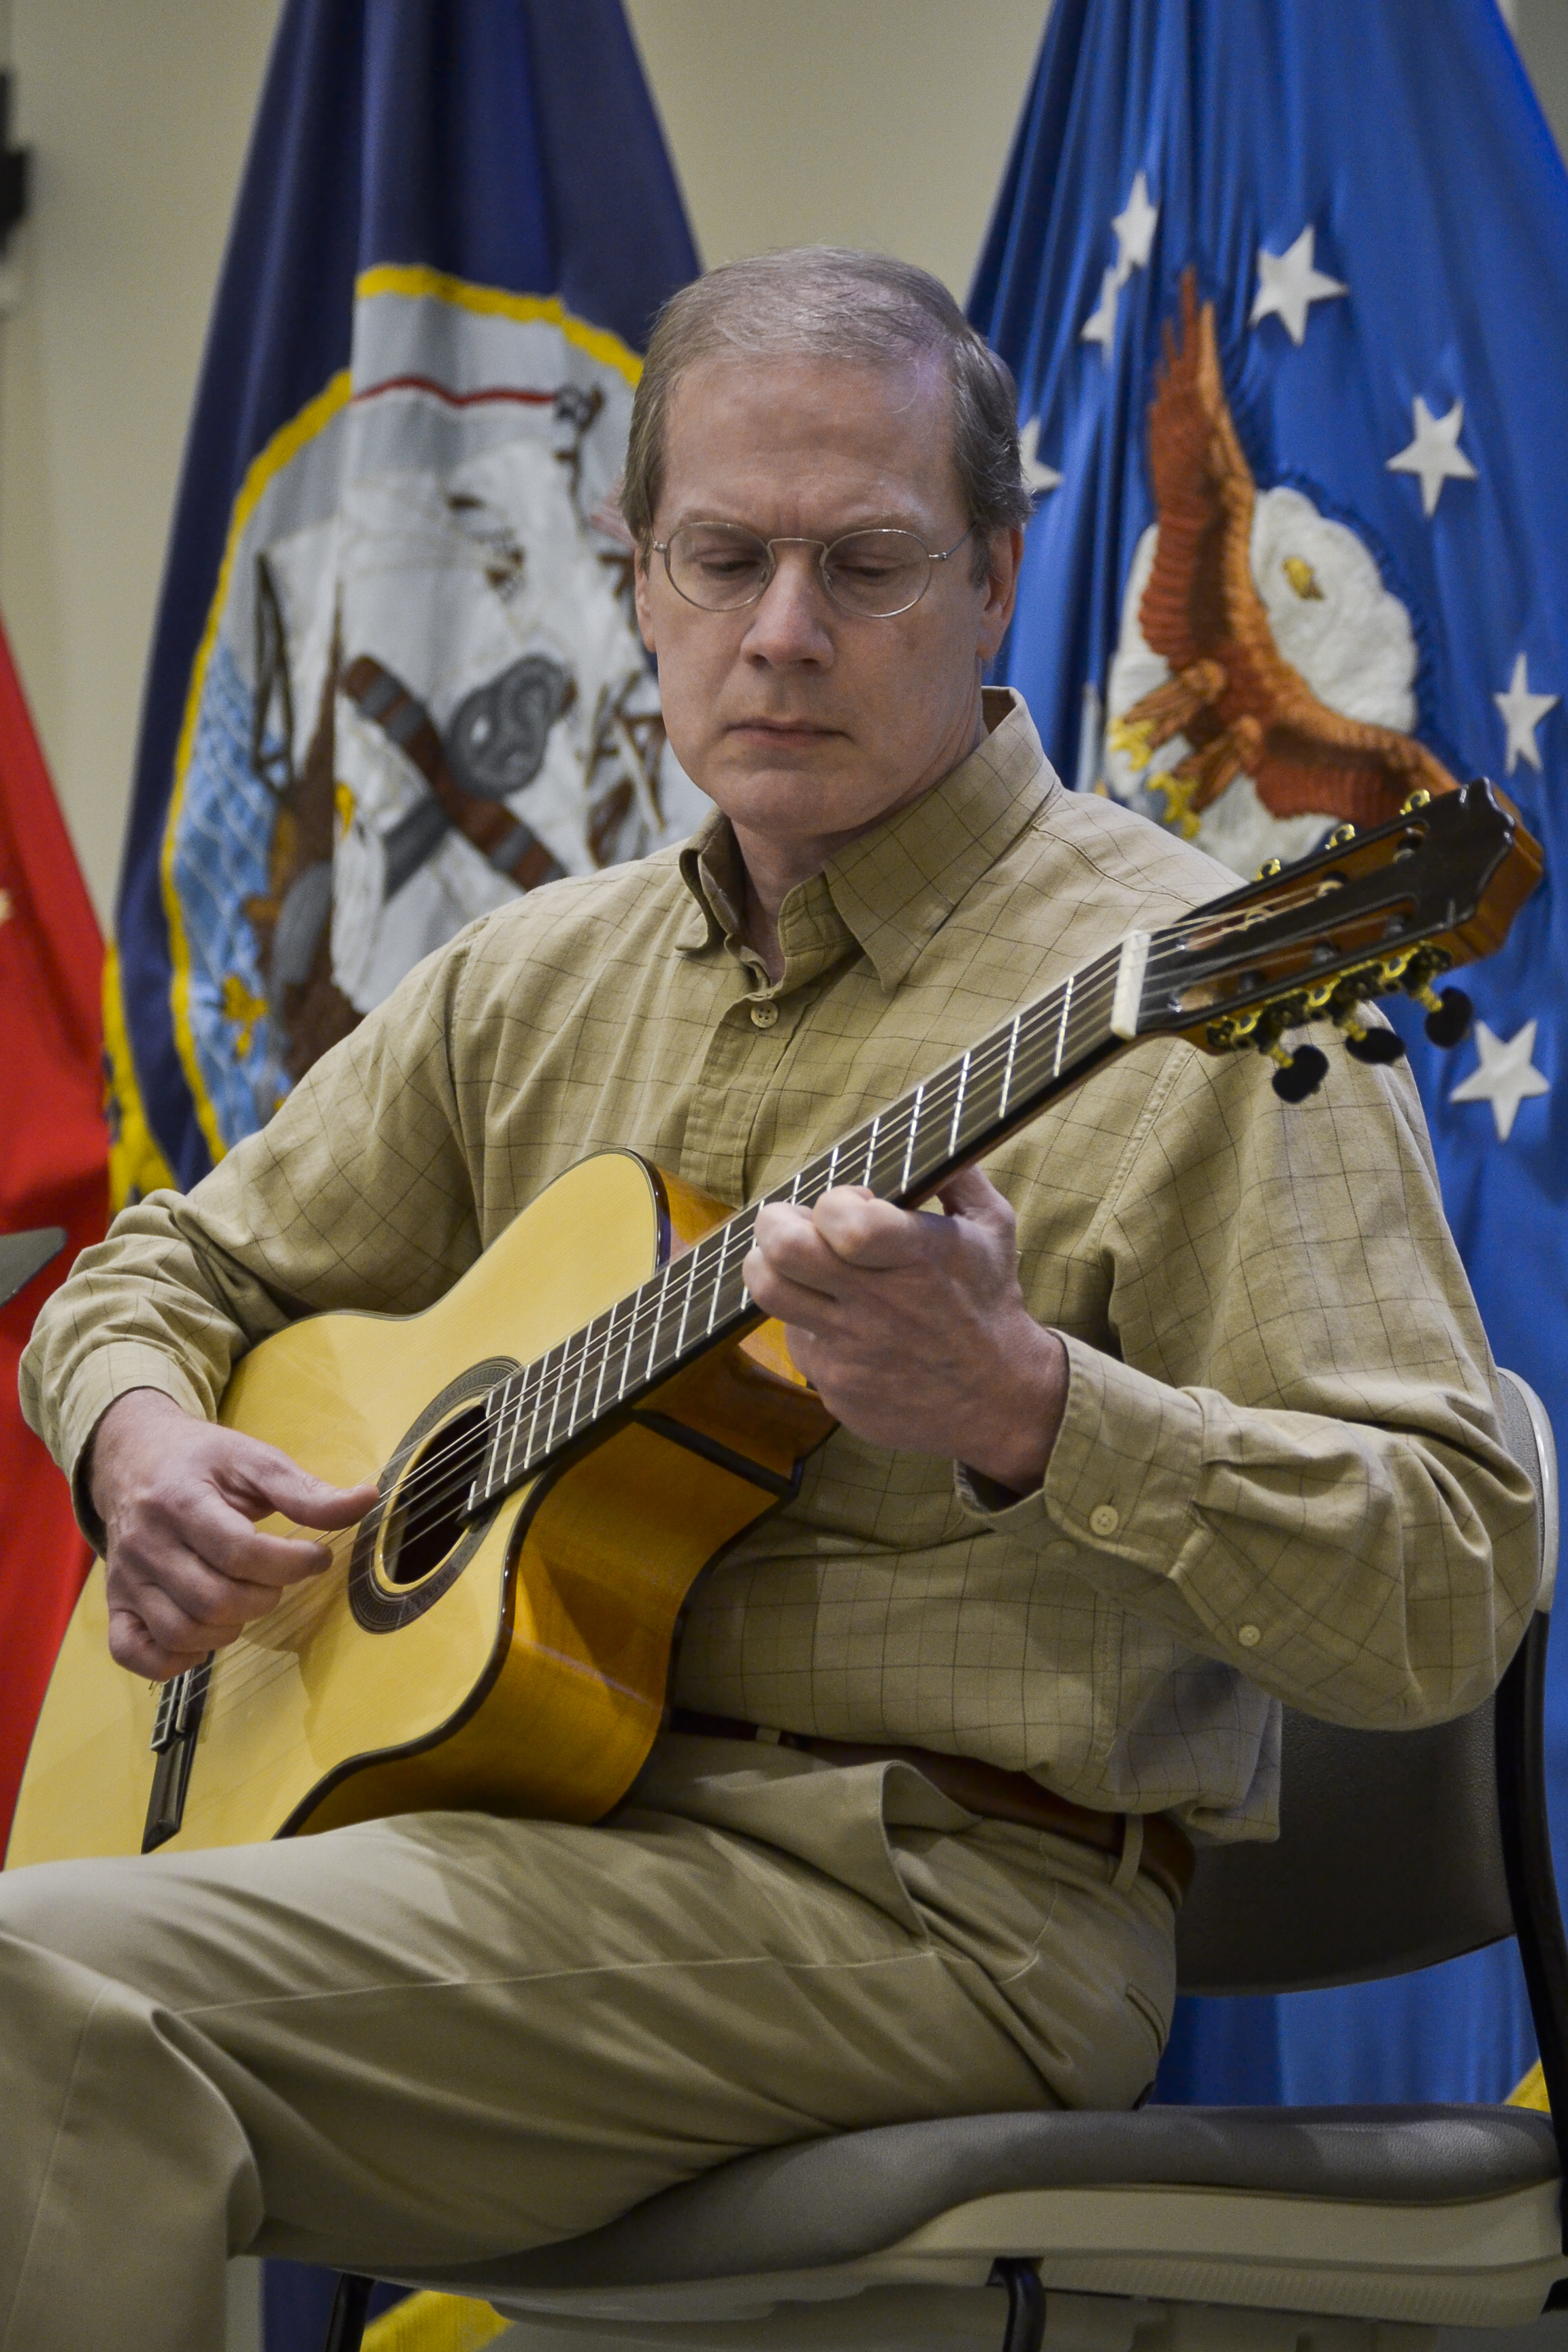 Raymond Smith, DLA Troop Support Clothing and Textile contract specialist, performs two short guitar selections written by Fernando Sor, a Spanish classical guitarist and composer, during the annual Hispanic Heritage Month celebration Sept. 25, 2019 in Philadelphia.